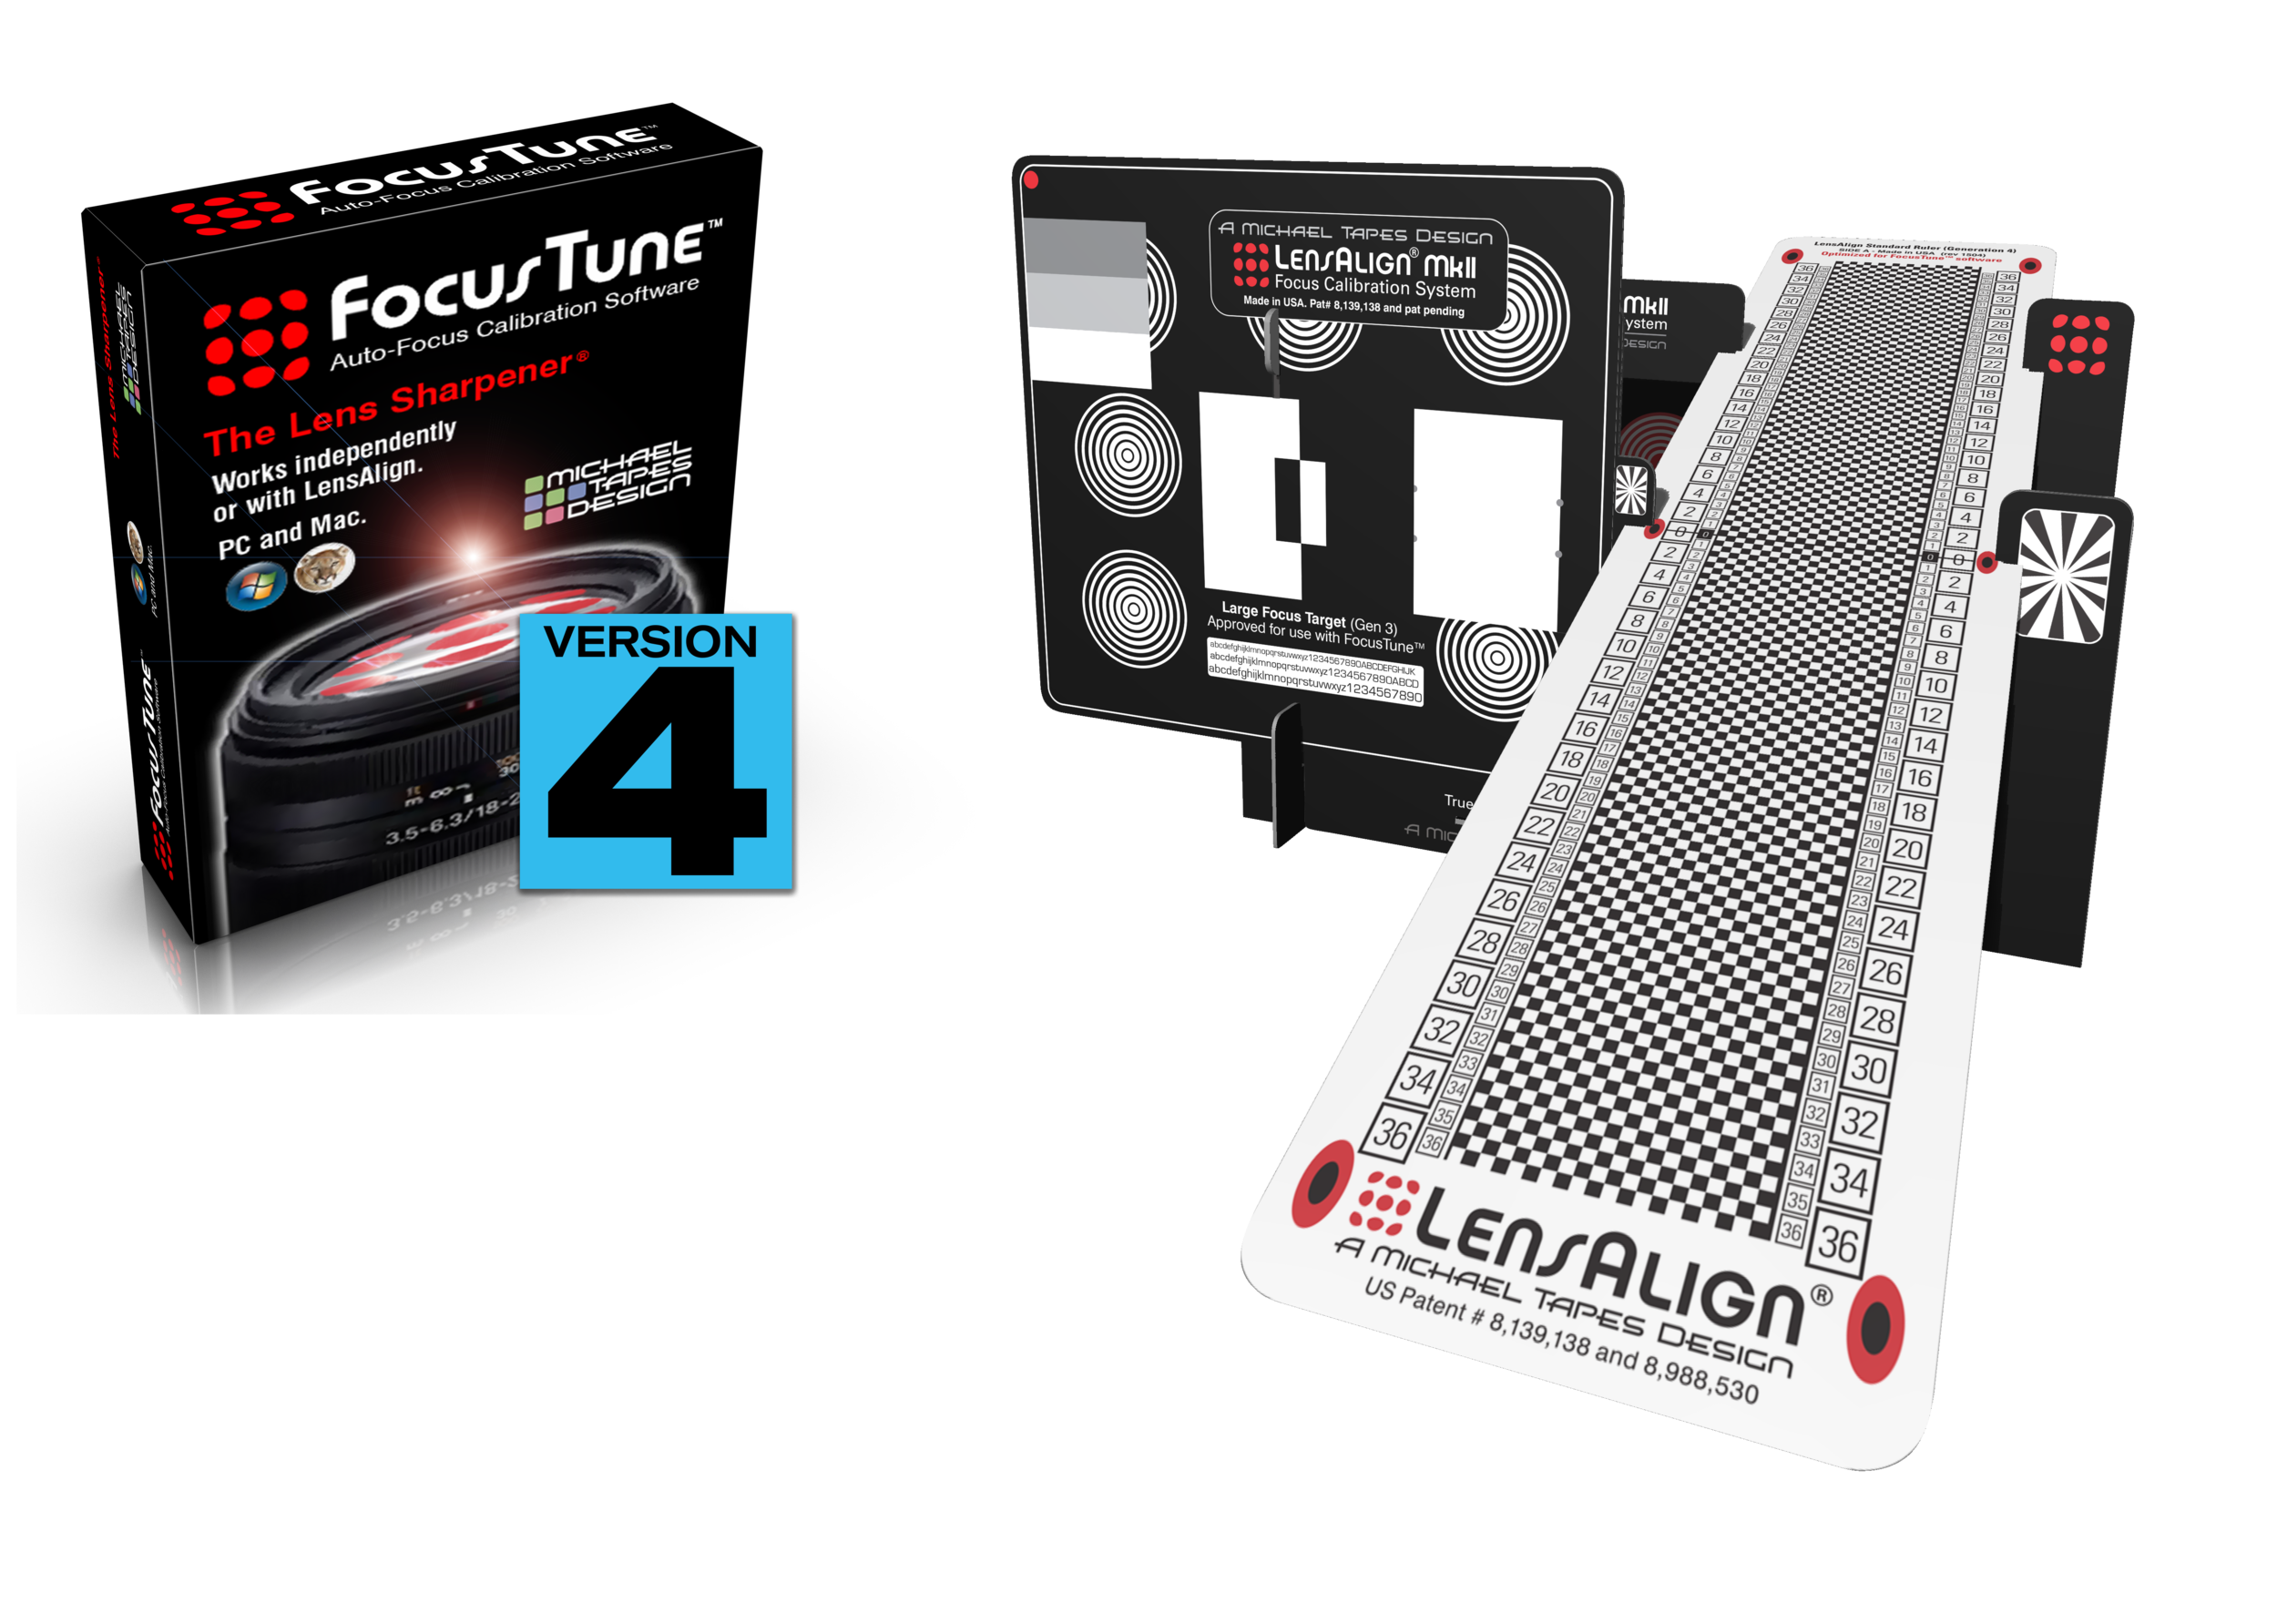 Includes LensAlign MkIi Generation 4 & FocusTune V4 download link with Activation Serial#